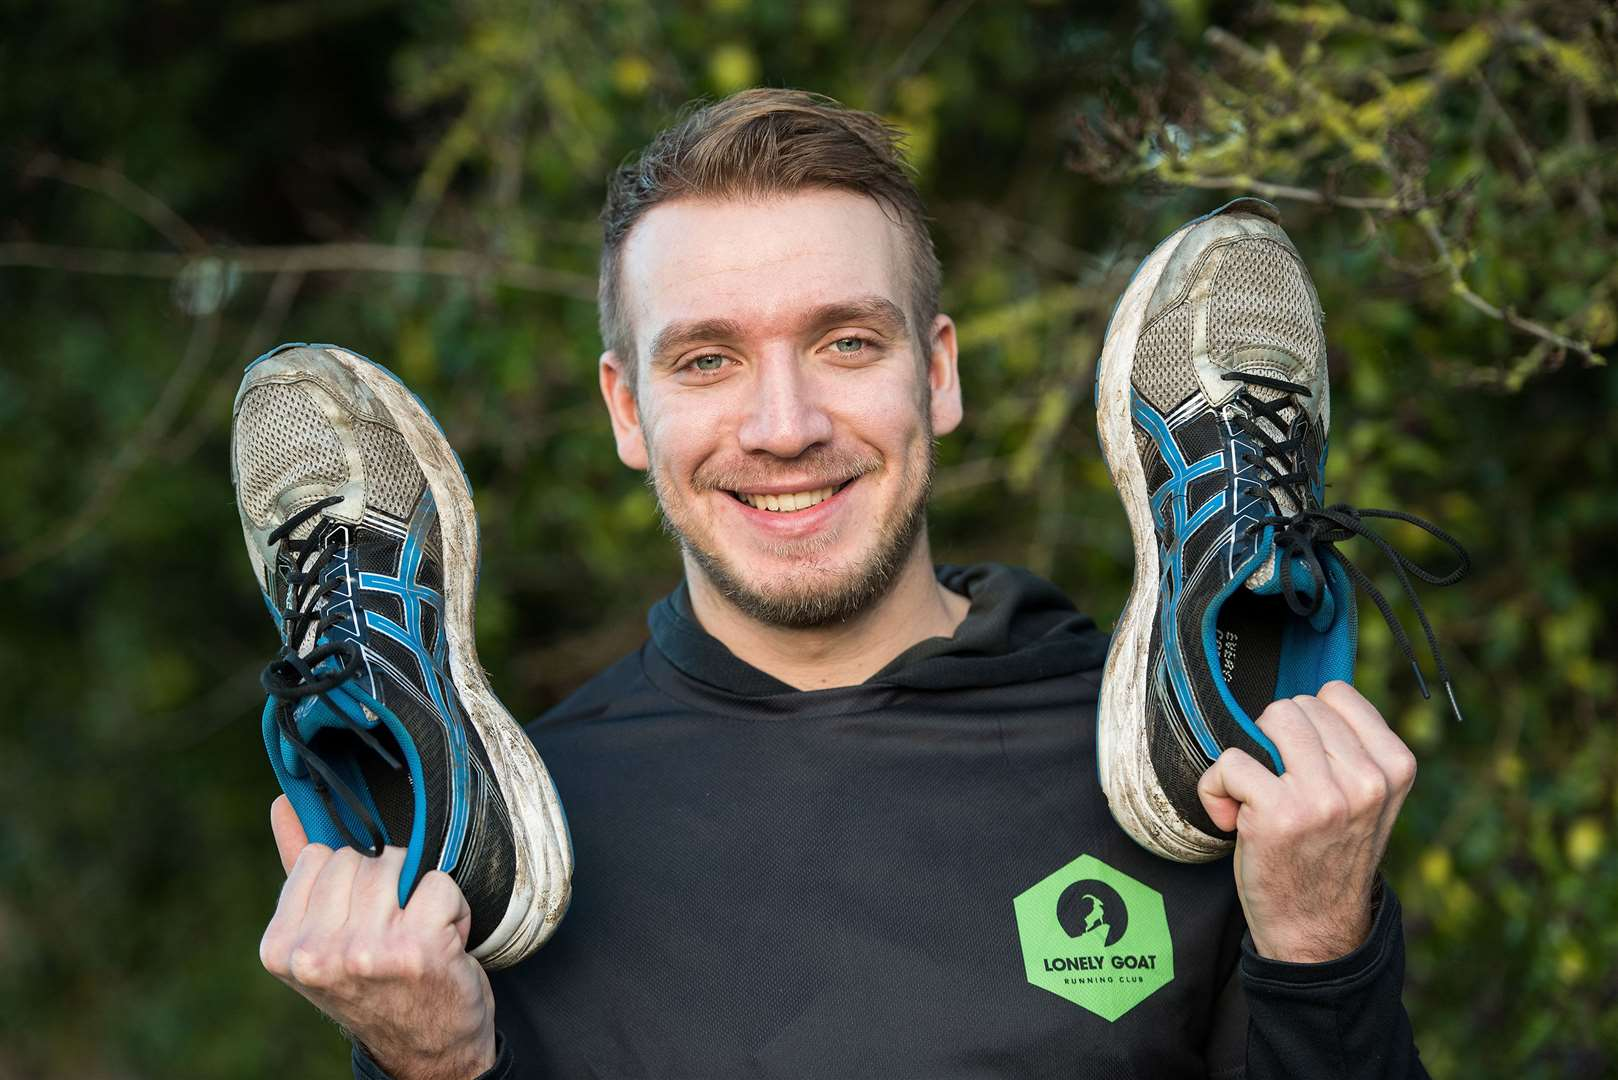 Gareth Isaacson is running 106km around the Isle of Wight in May to raise funds for Mind. Picture by Mark Westley.